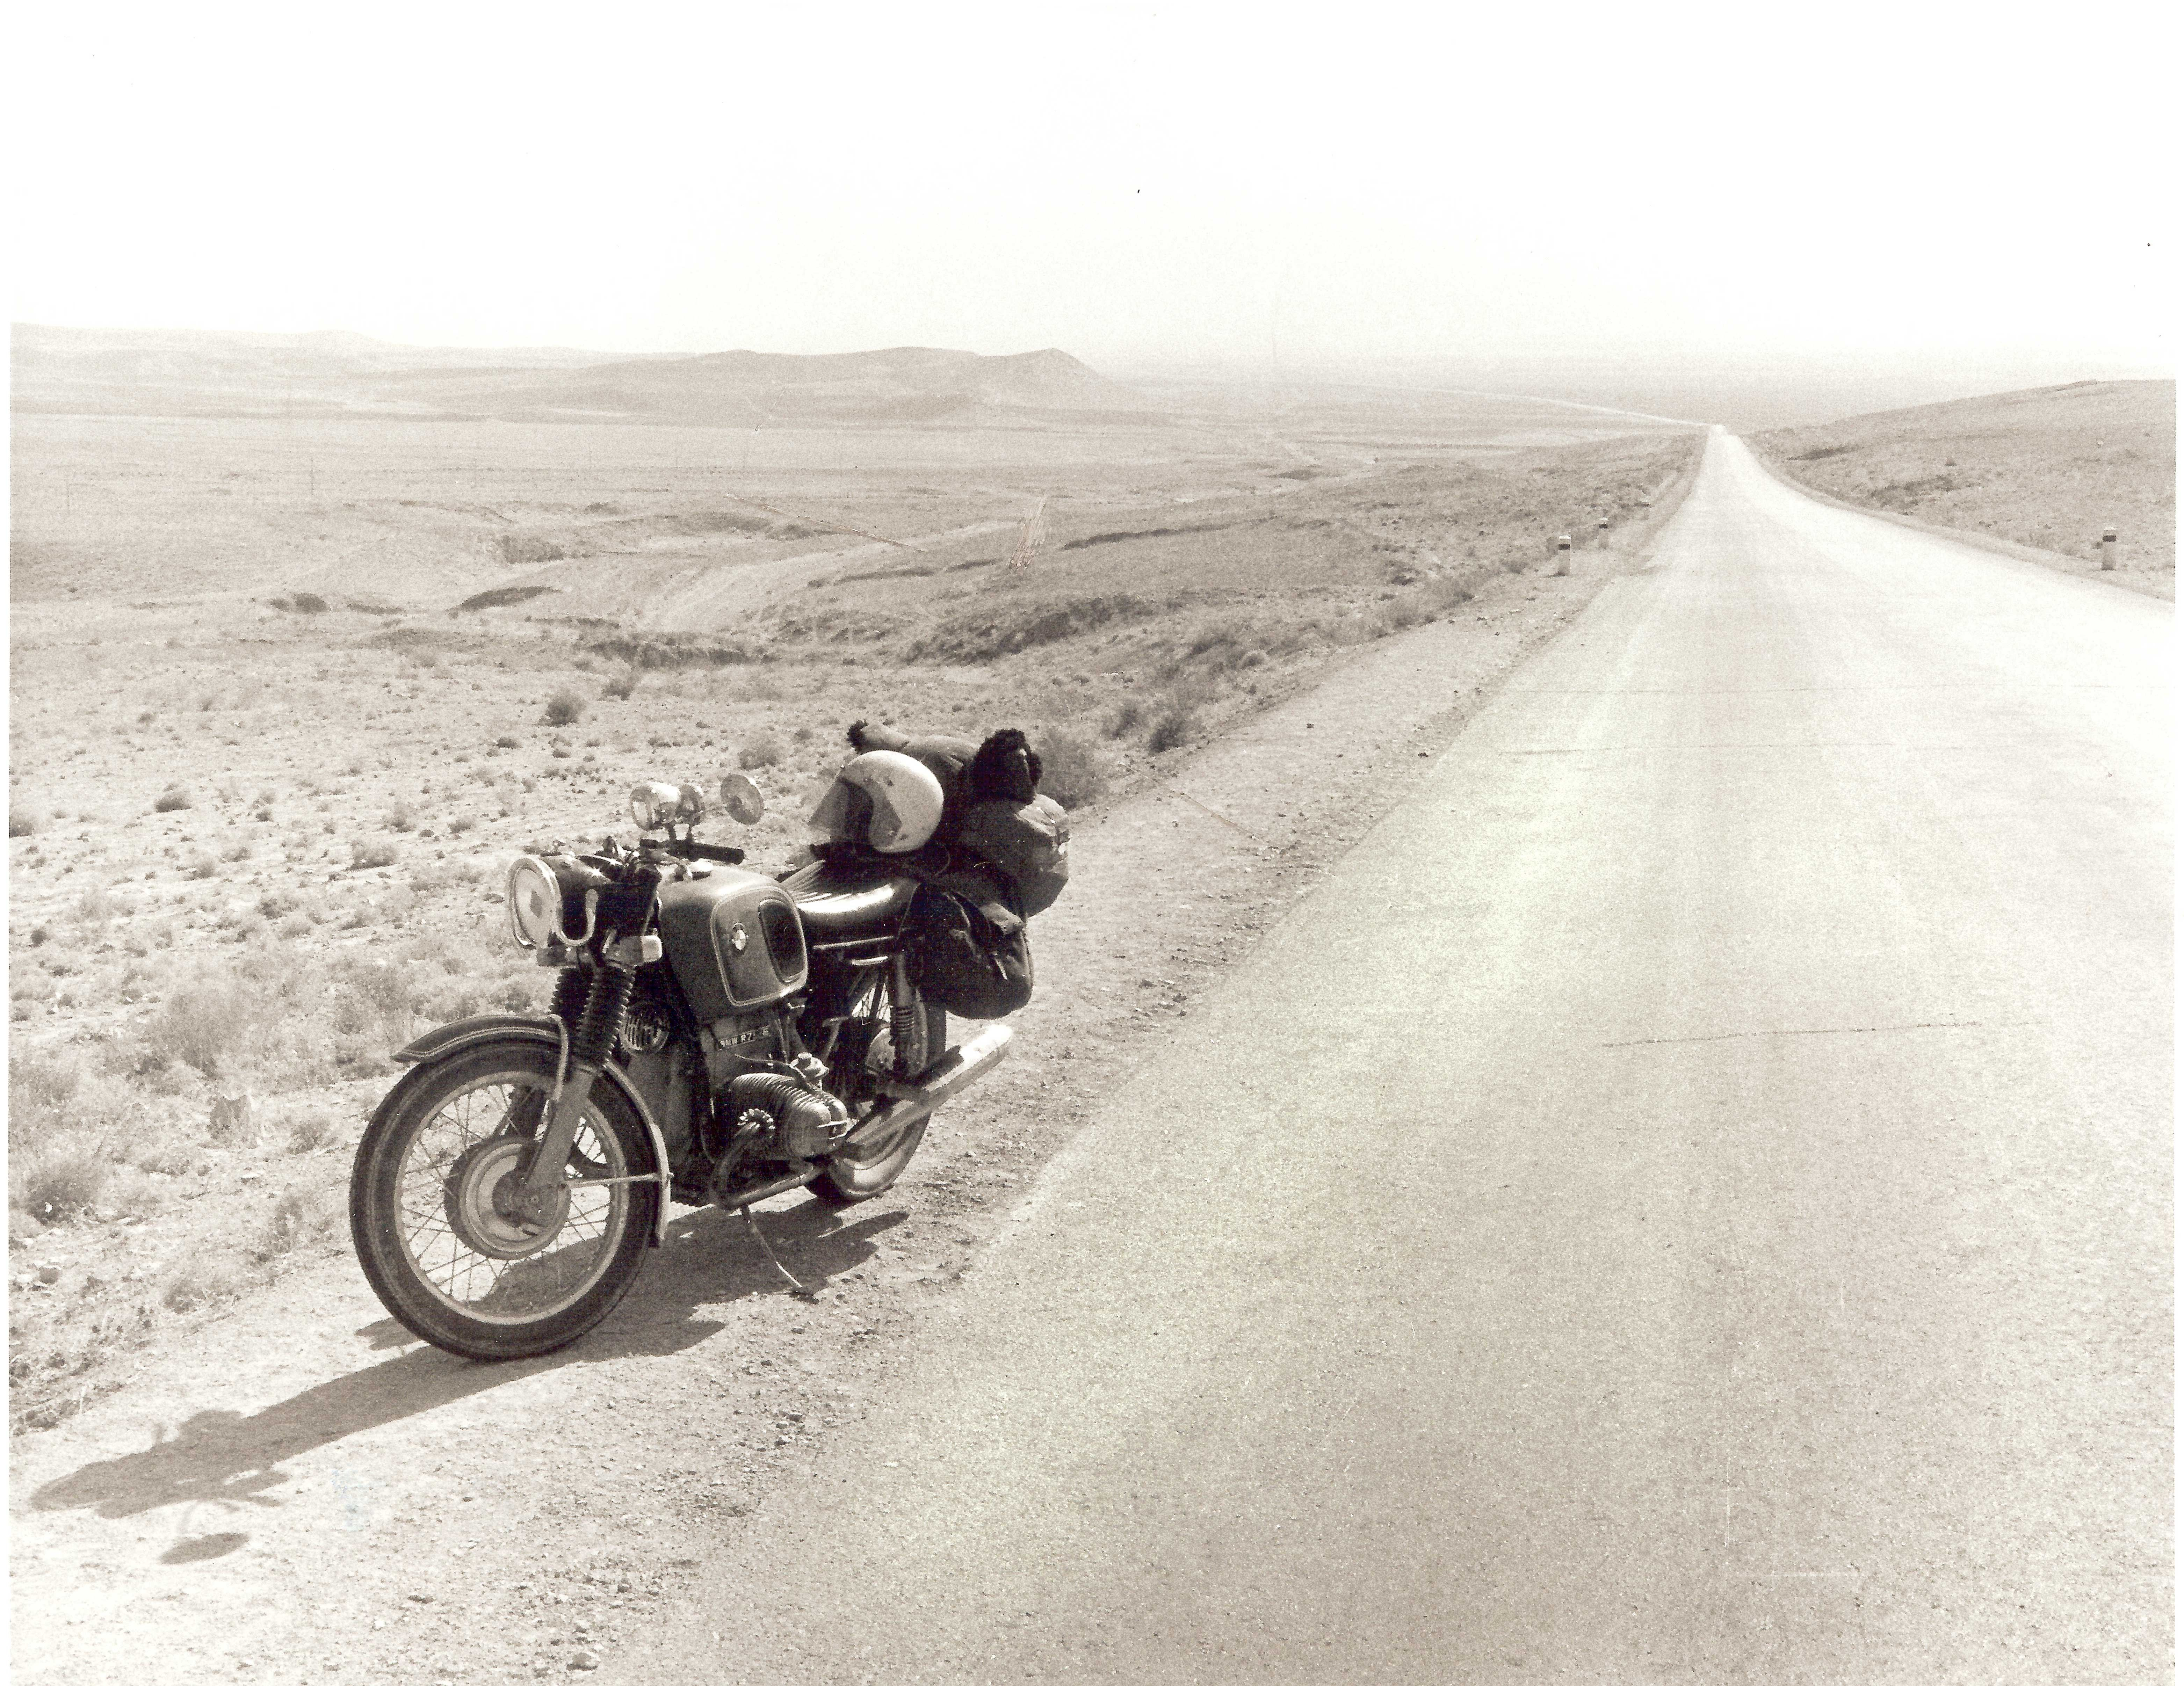 Vintage Motorcycle Wallpaper High Definition Motorcycle Wallpaper Classic Wallpaper Classic Motorcycles